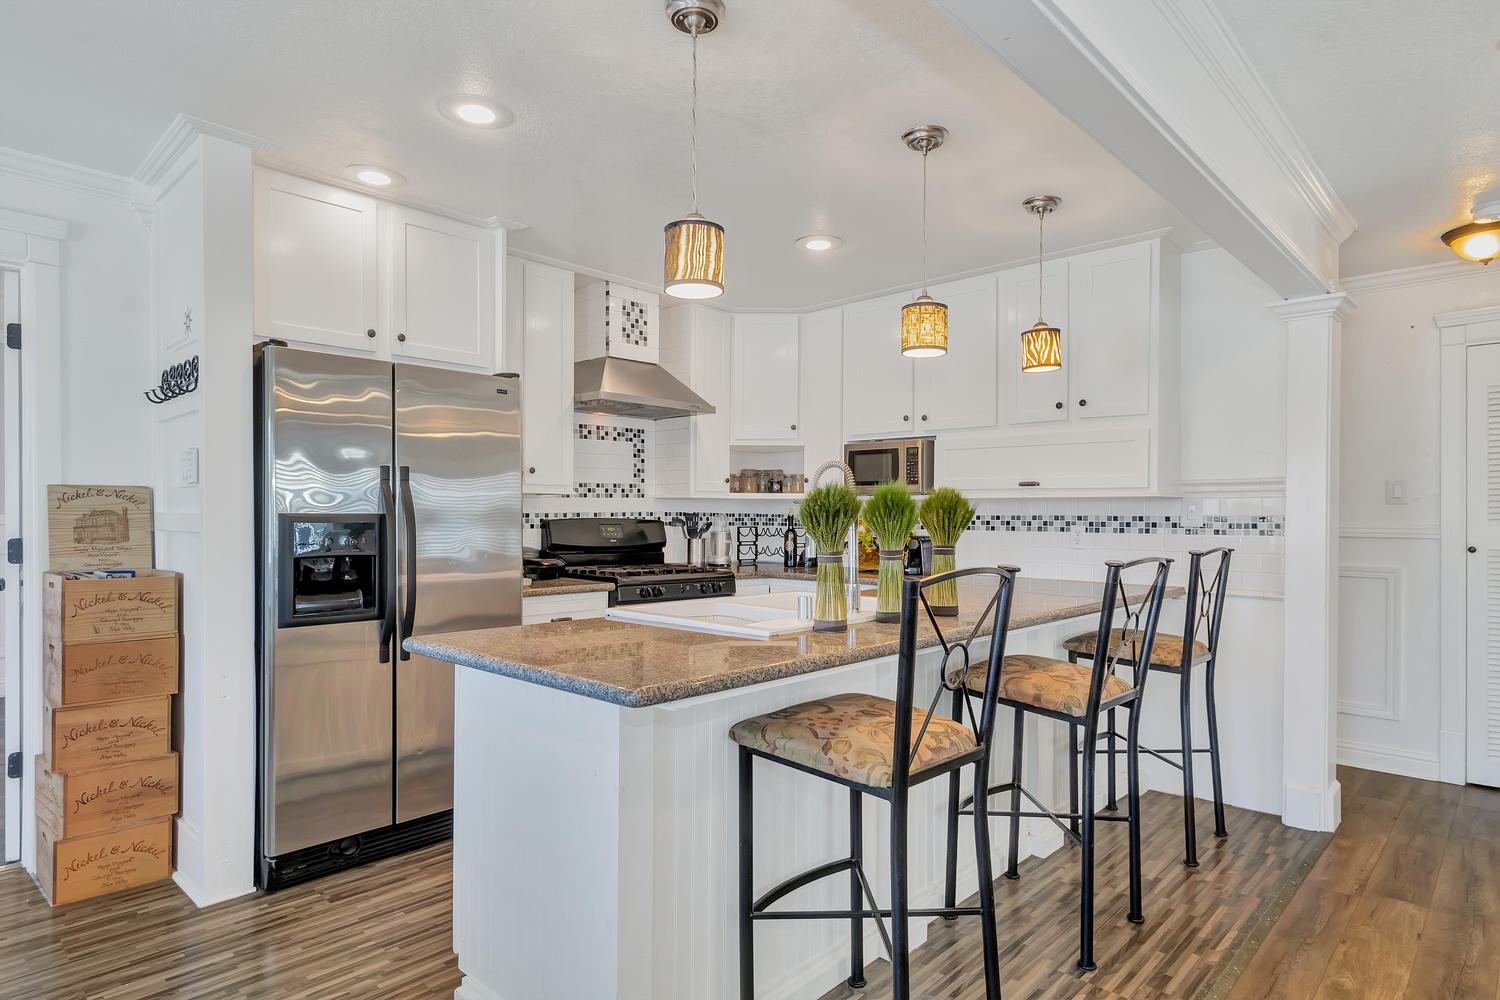 Updated kitchen with granite counters, farm-style basin sink and gorgeous tile backsplash.